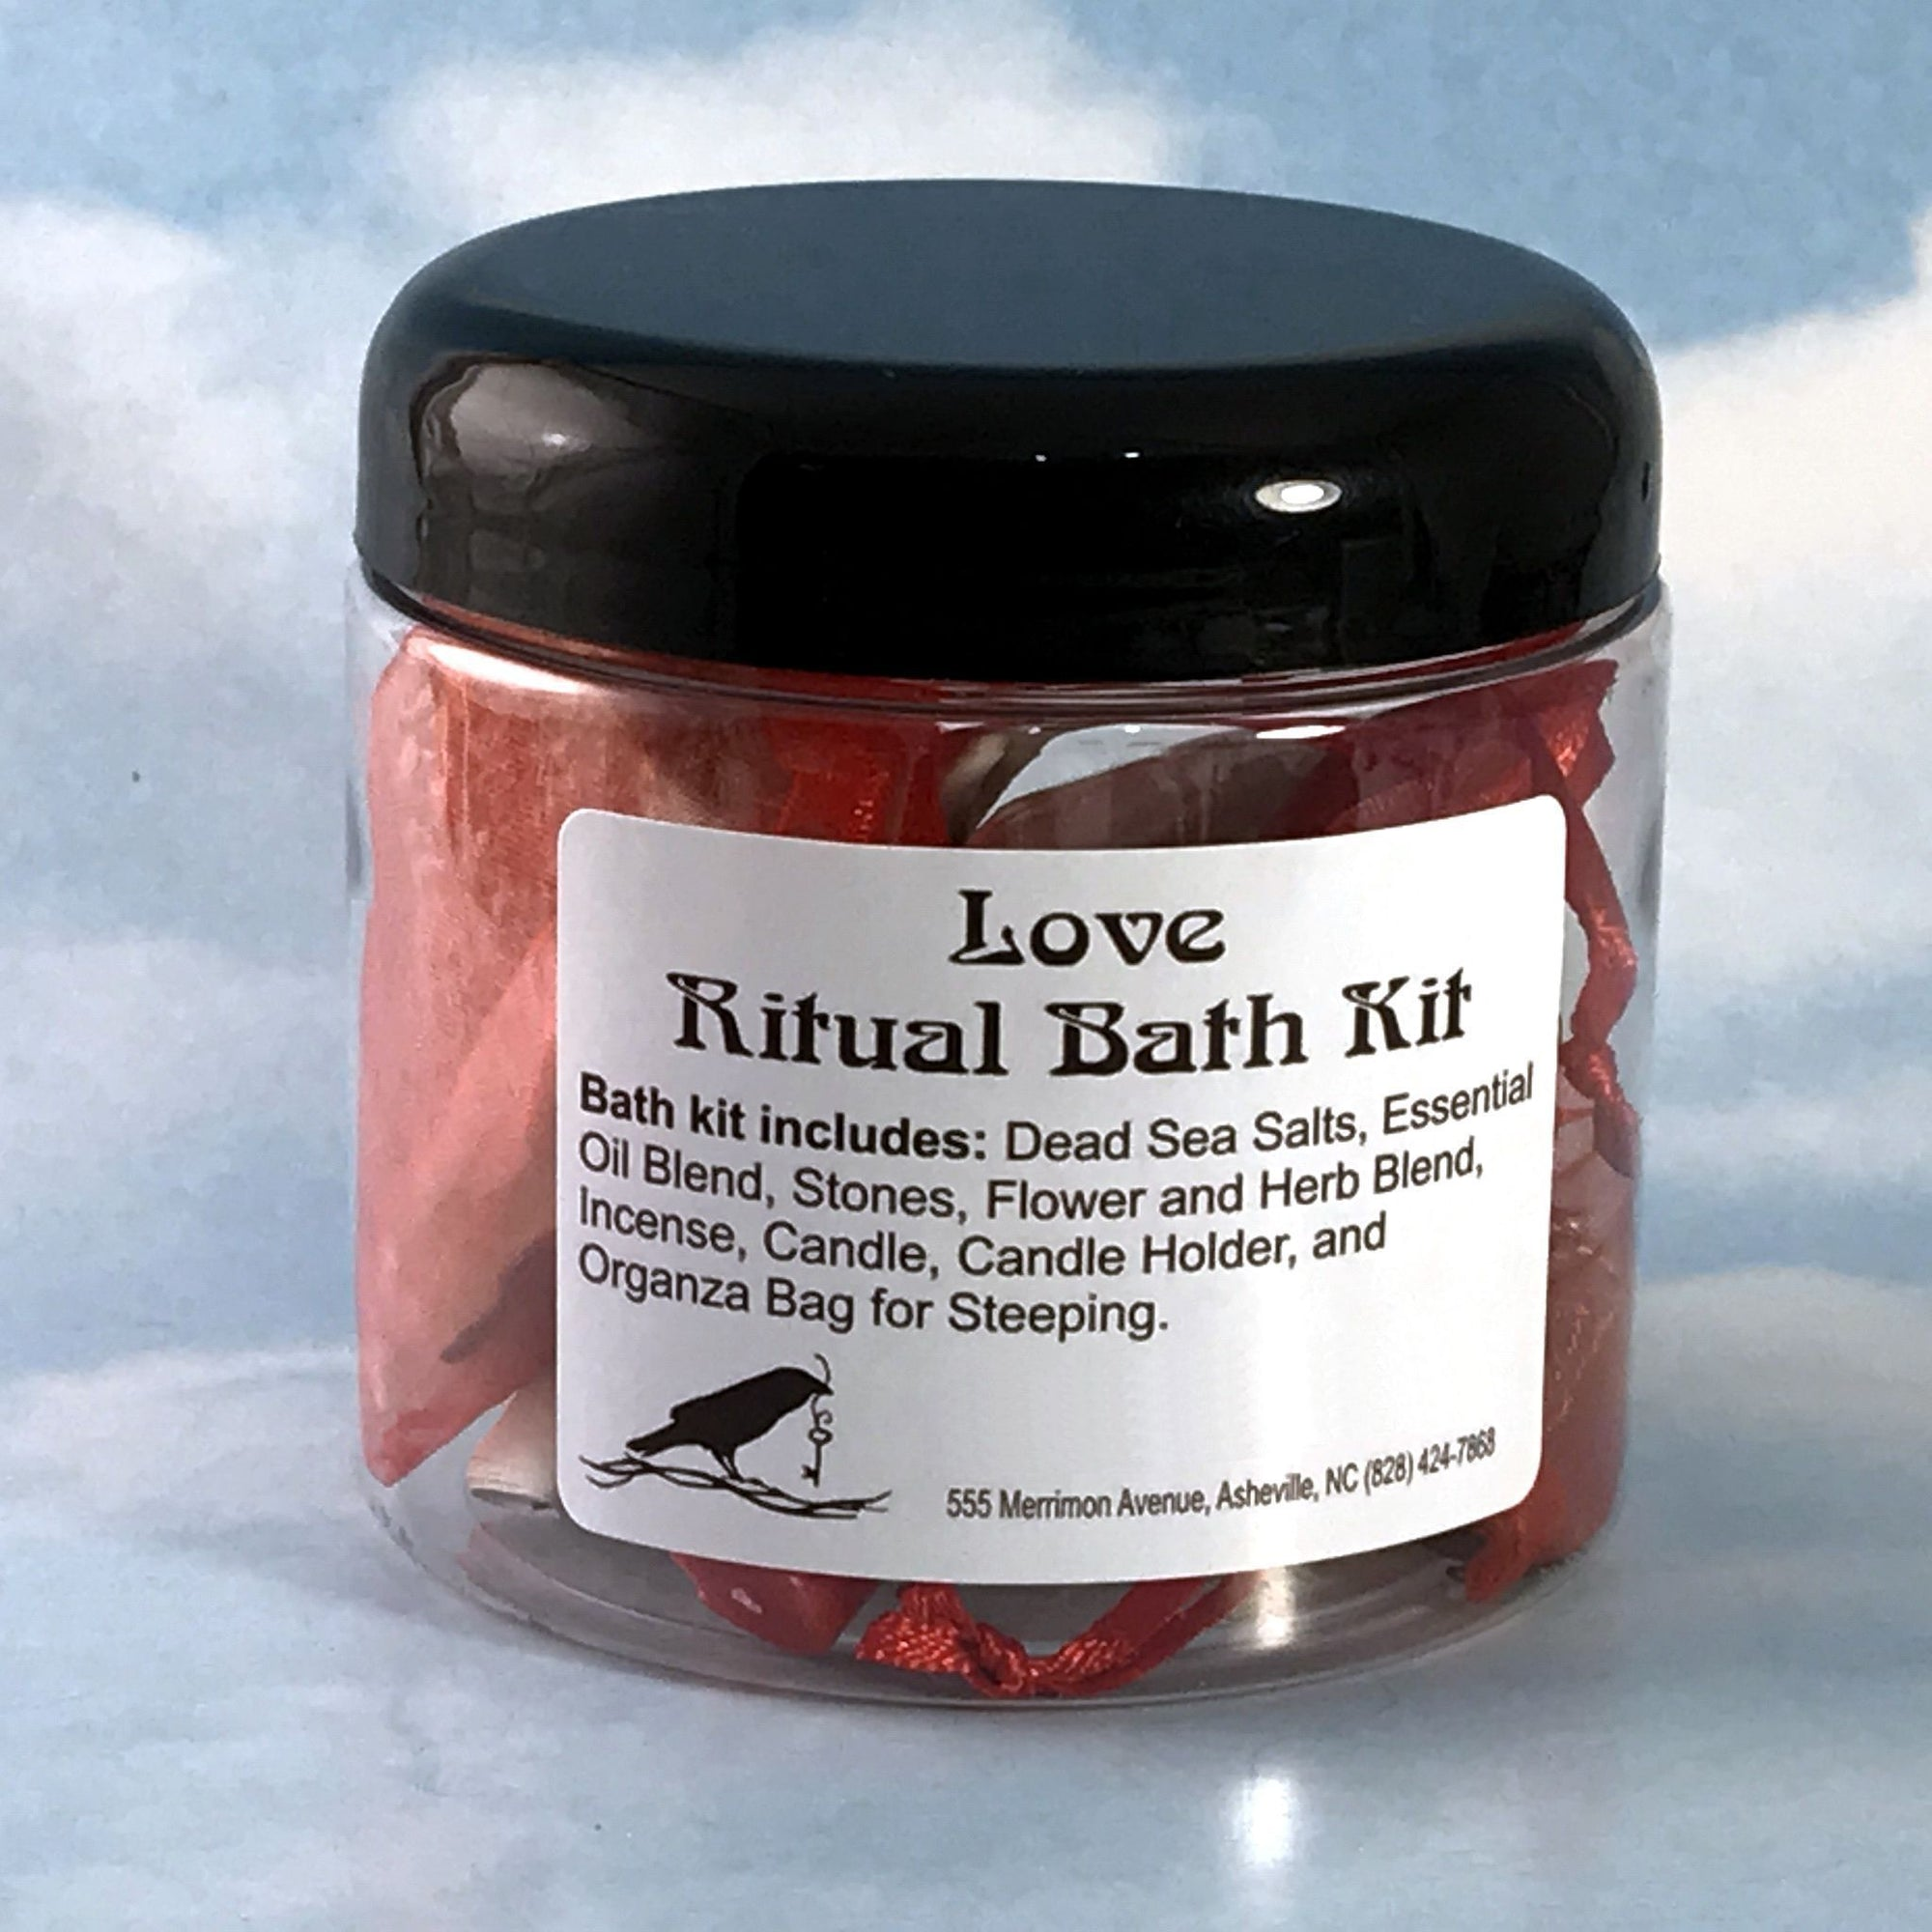 Love Ritual Bath Kit